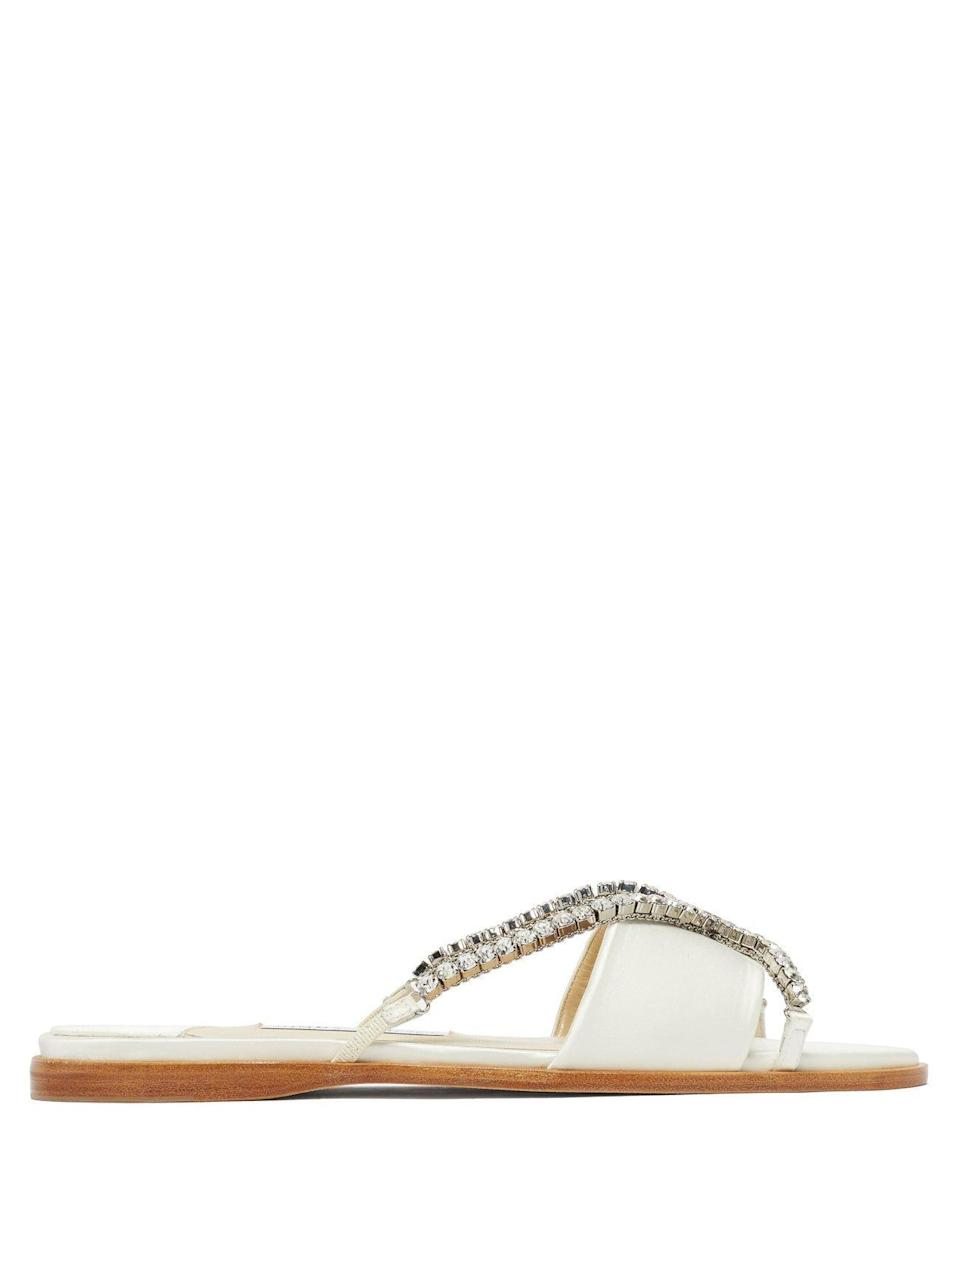 """<p><strong>Jimmy Choo</strong></p><p>matchesfashion.com</p><p><strong>$747.00</strong></p><p><a href=""""https://go.redirectingat.com?id=74968X1596630&url=https%3A%2F%2Fwww.matchesfashion.com%2Fproducts%2FJimmy-Choo-Aadi-crystal-cross-strap-satin-slides-1399047&sref=https%3A%2F%2Fwww.harpersbazaar.com%2Fwedding%2Fbridal-fashion%2Fg36113322%2Fwedding-flats-for-brides%2F"""" rel=""""nofollow noopener"""" target=""""_blank"""" data-ylk=""""slk:SHOP NOW"""" class=""""link rapid-noclick-resp"""">SHOP NOW</a></p><p>Dress up easy slides for the beach—or any summertime wedding dressing—with crystal accents and bridal hues.</p>"""